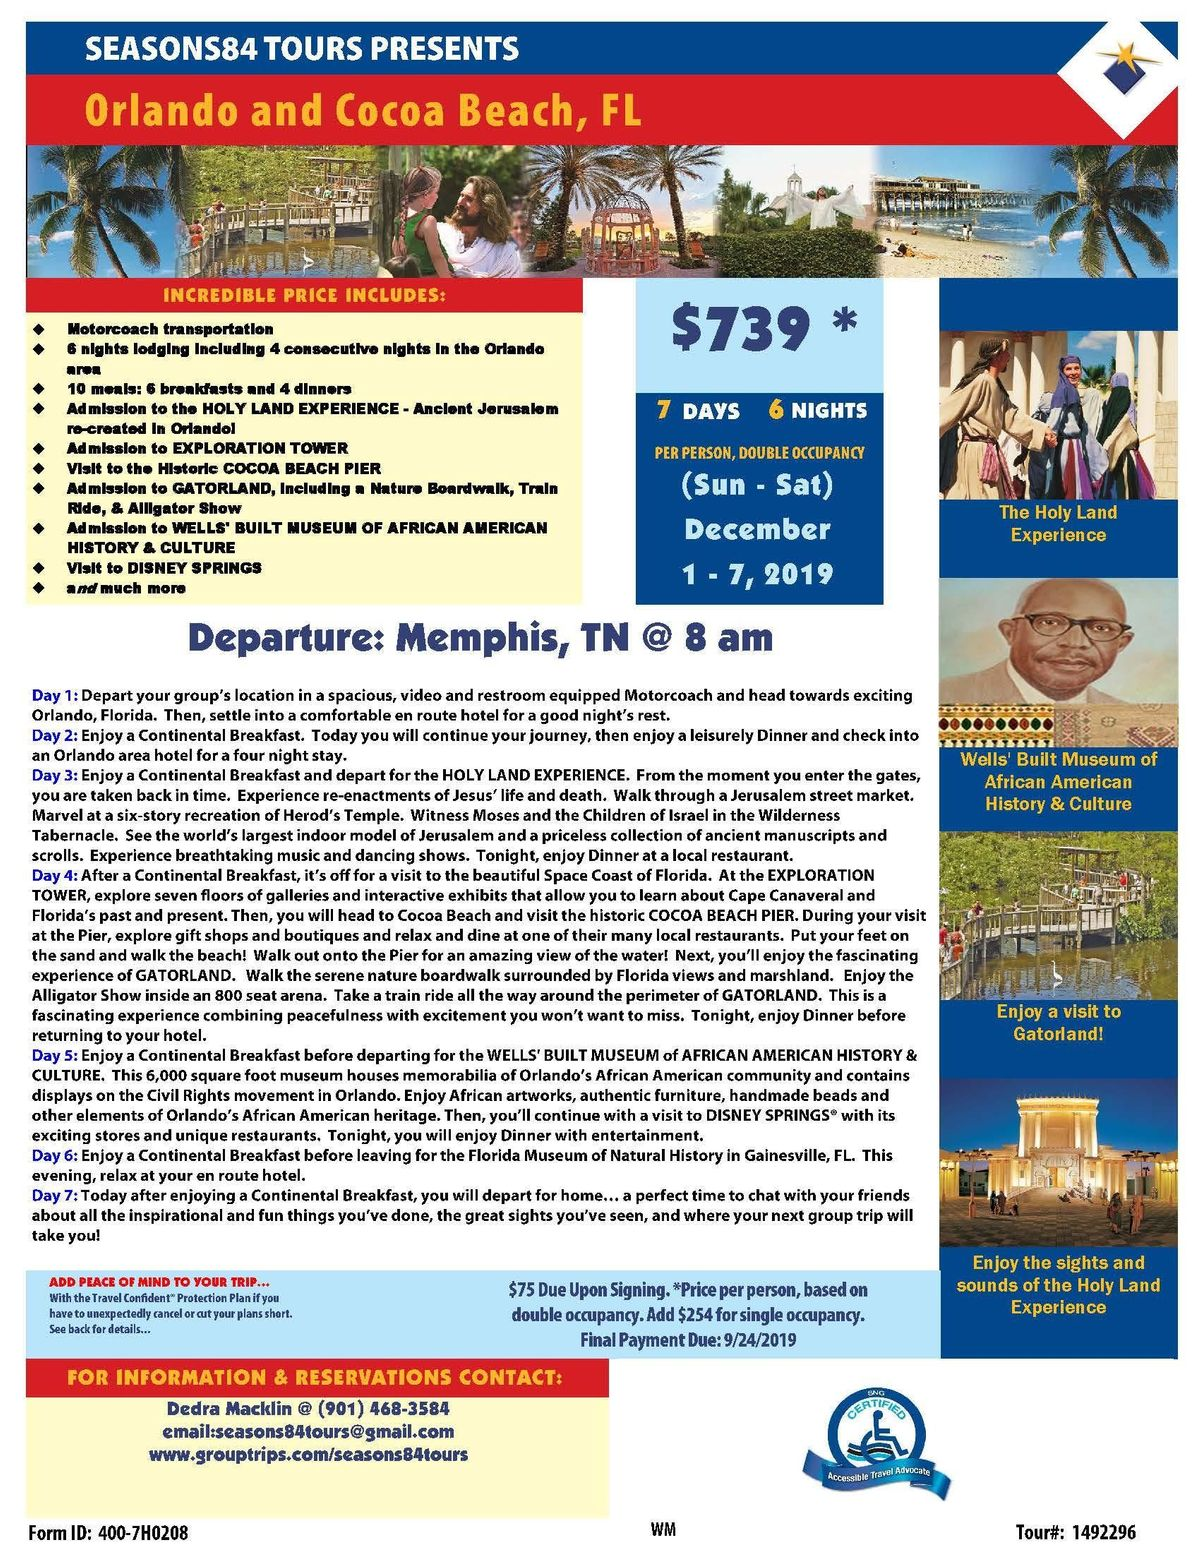 THE HOLY LAND EXPERIENCE, BEAUTIFUL BEACHES & TAX FREE SHOPPING